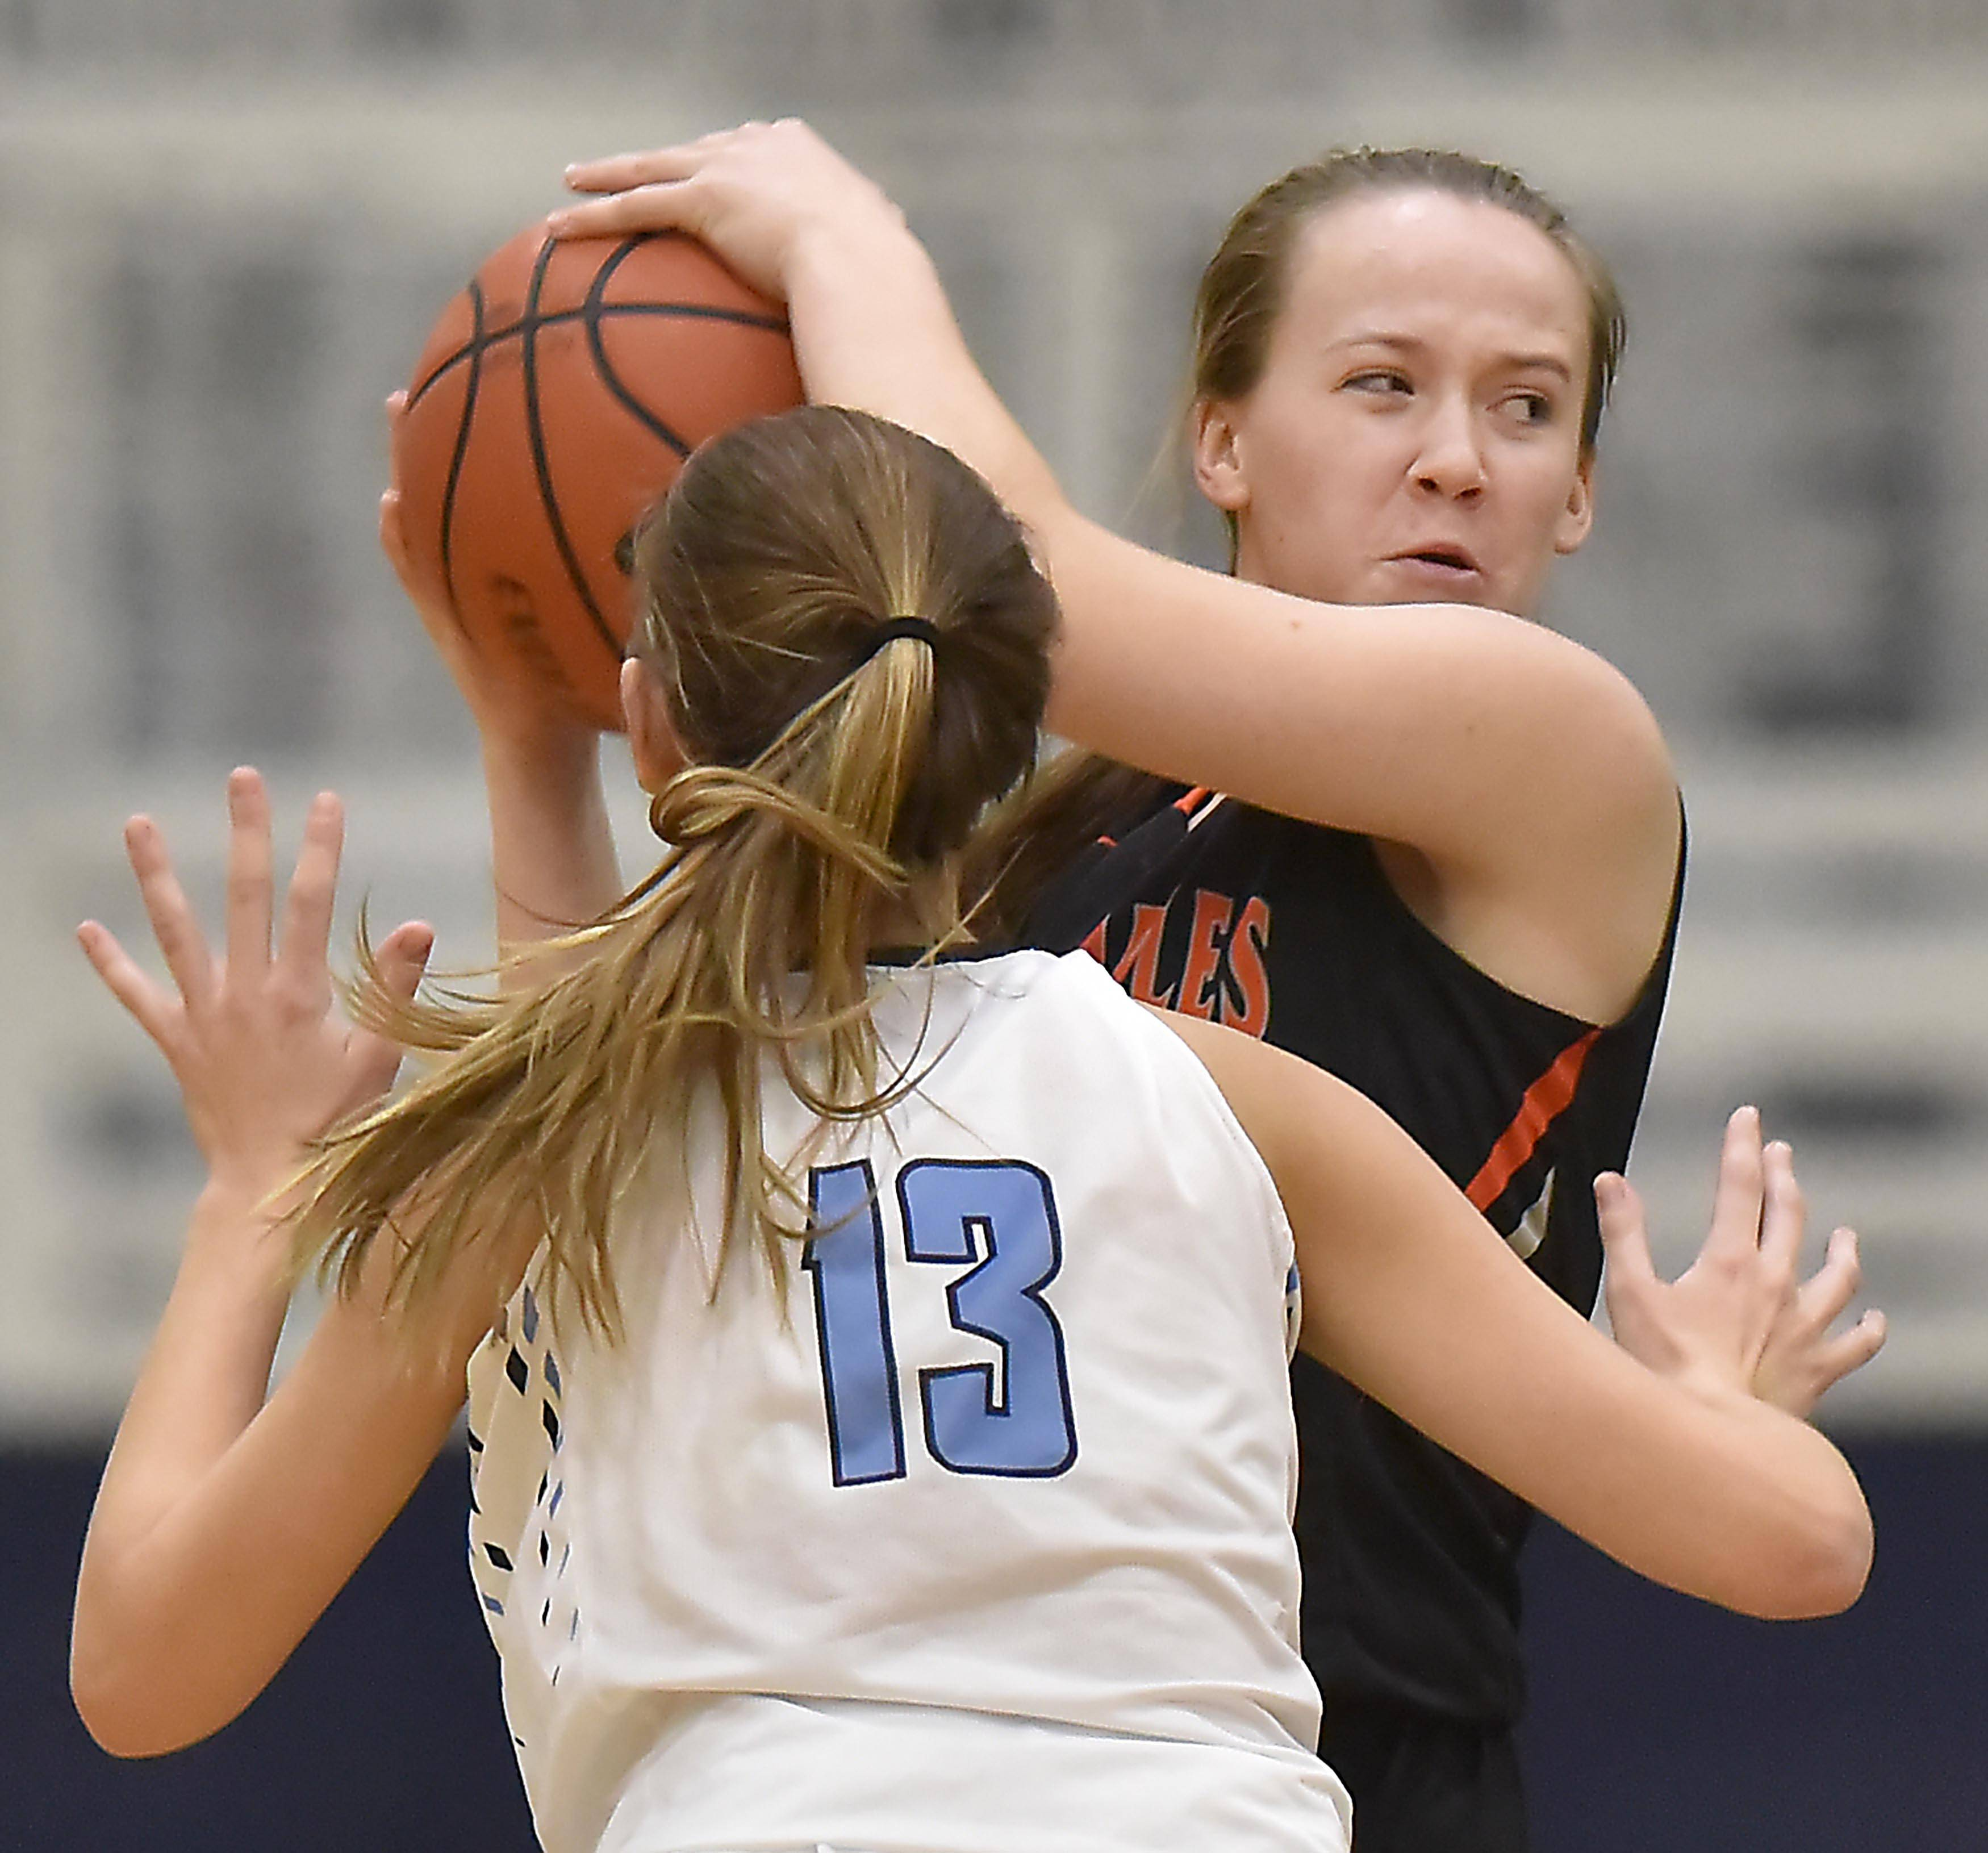 St. Charles East's Makenna Brown tries to find a teammate as Prospect's Jessica Kowalczyk pressures her Wednesday in a girls basketball game in Mount Prospect.